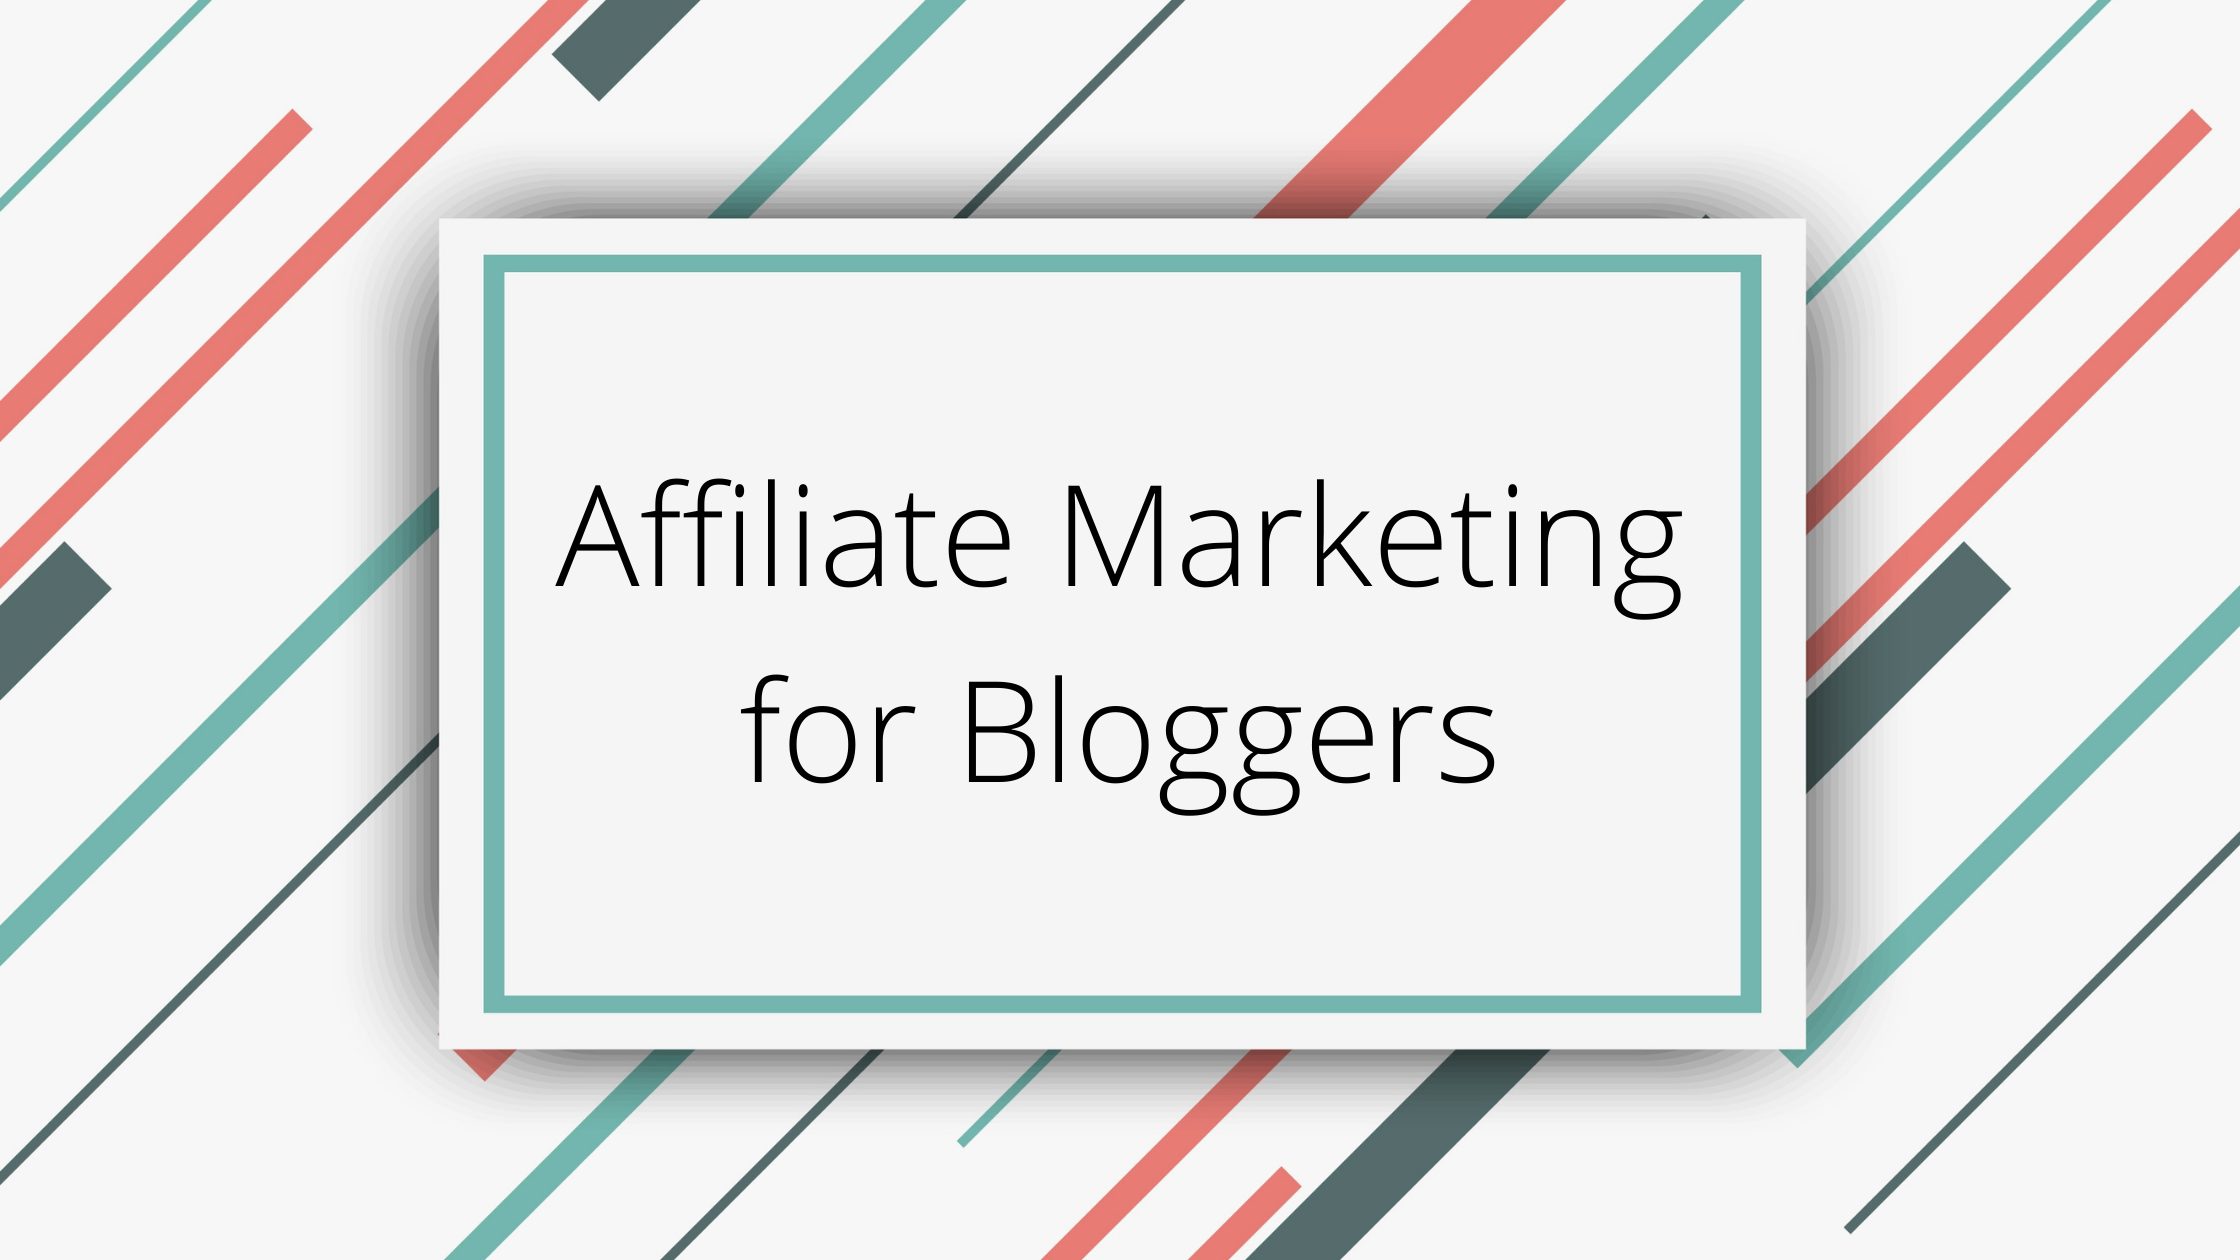 affiliate marketing for bloggers, Do bloggers use affiliate programs, Affiliate marketing for beginners, blogging affiliate marketing, What is Affiliate Blogging, How to write affiliate blog,